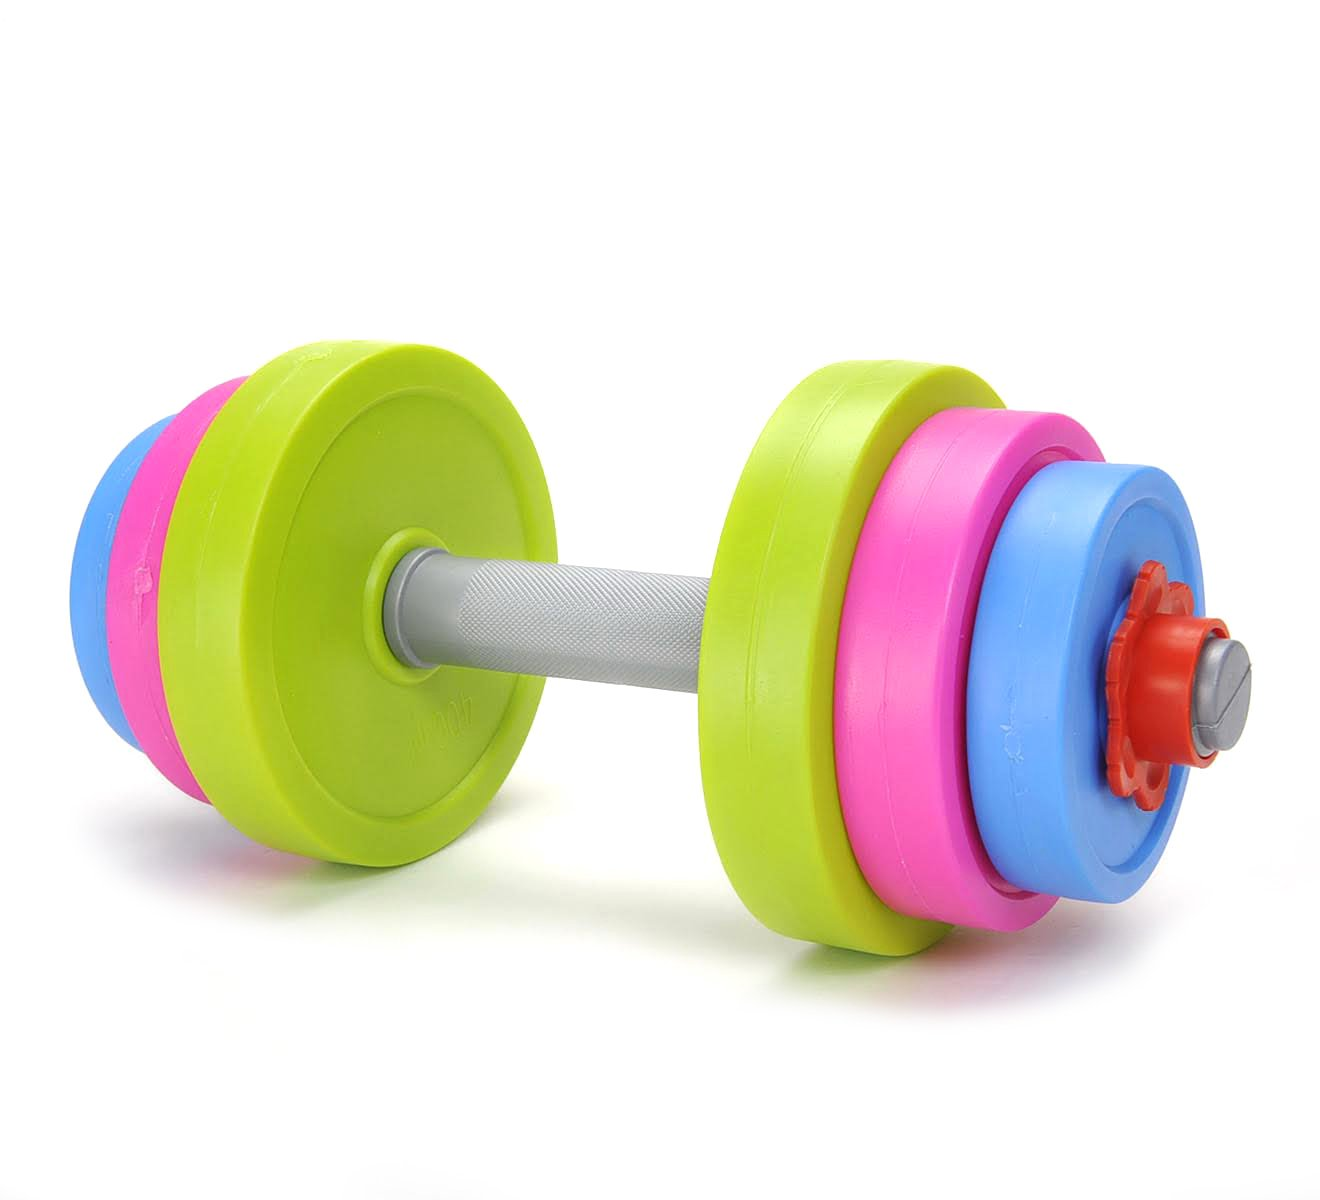 PowerTRC Fun and Colorful Dumbbell for Kids - Adjustable Weights - Fill Weights with Water or Sand - Beach Toys